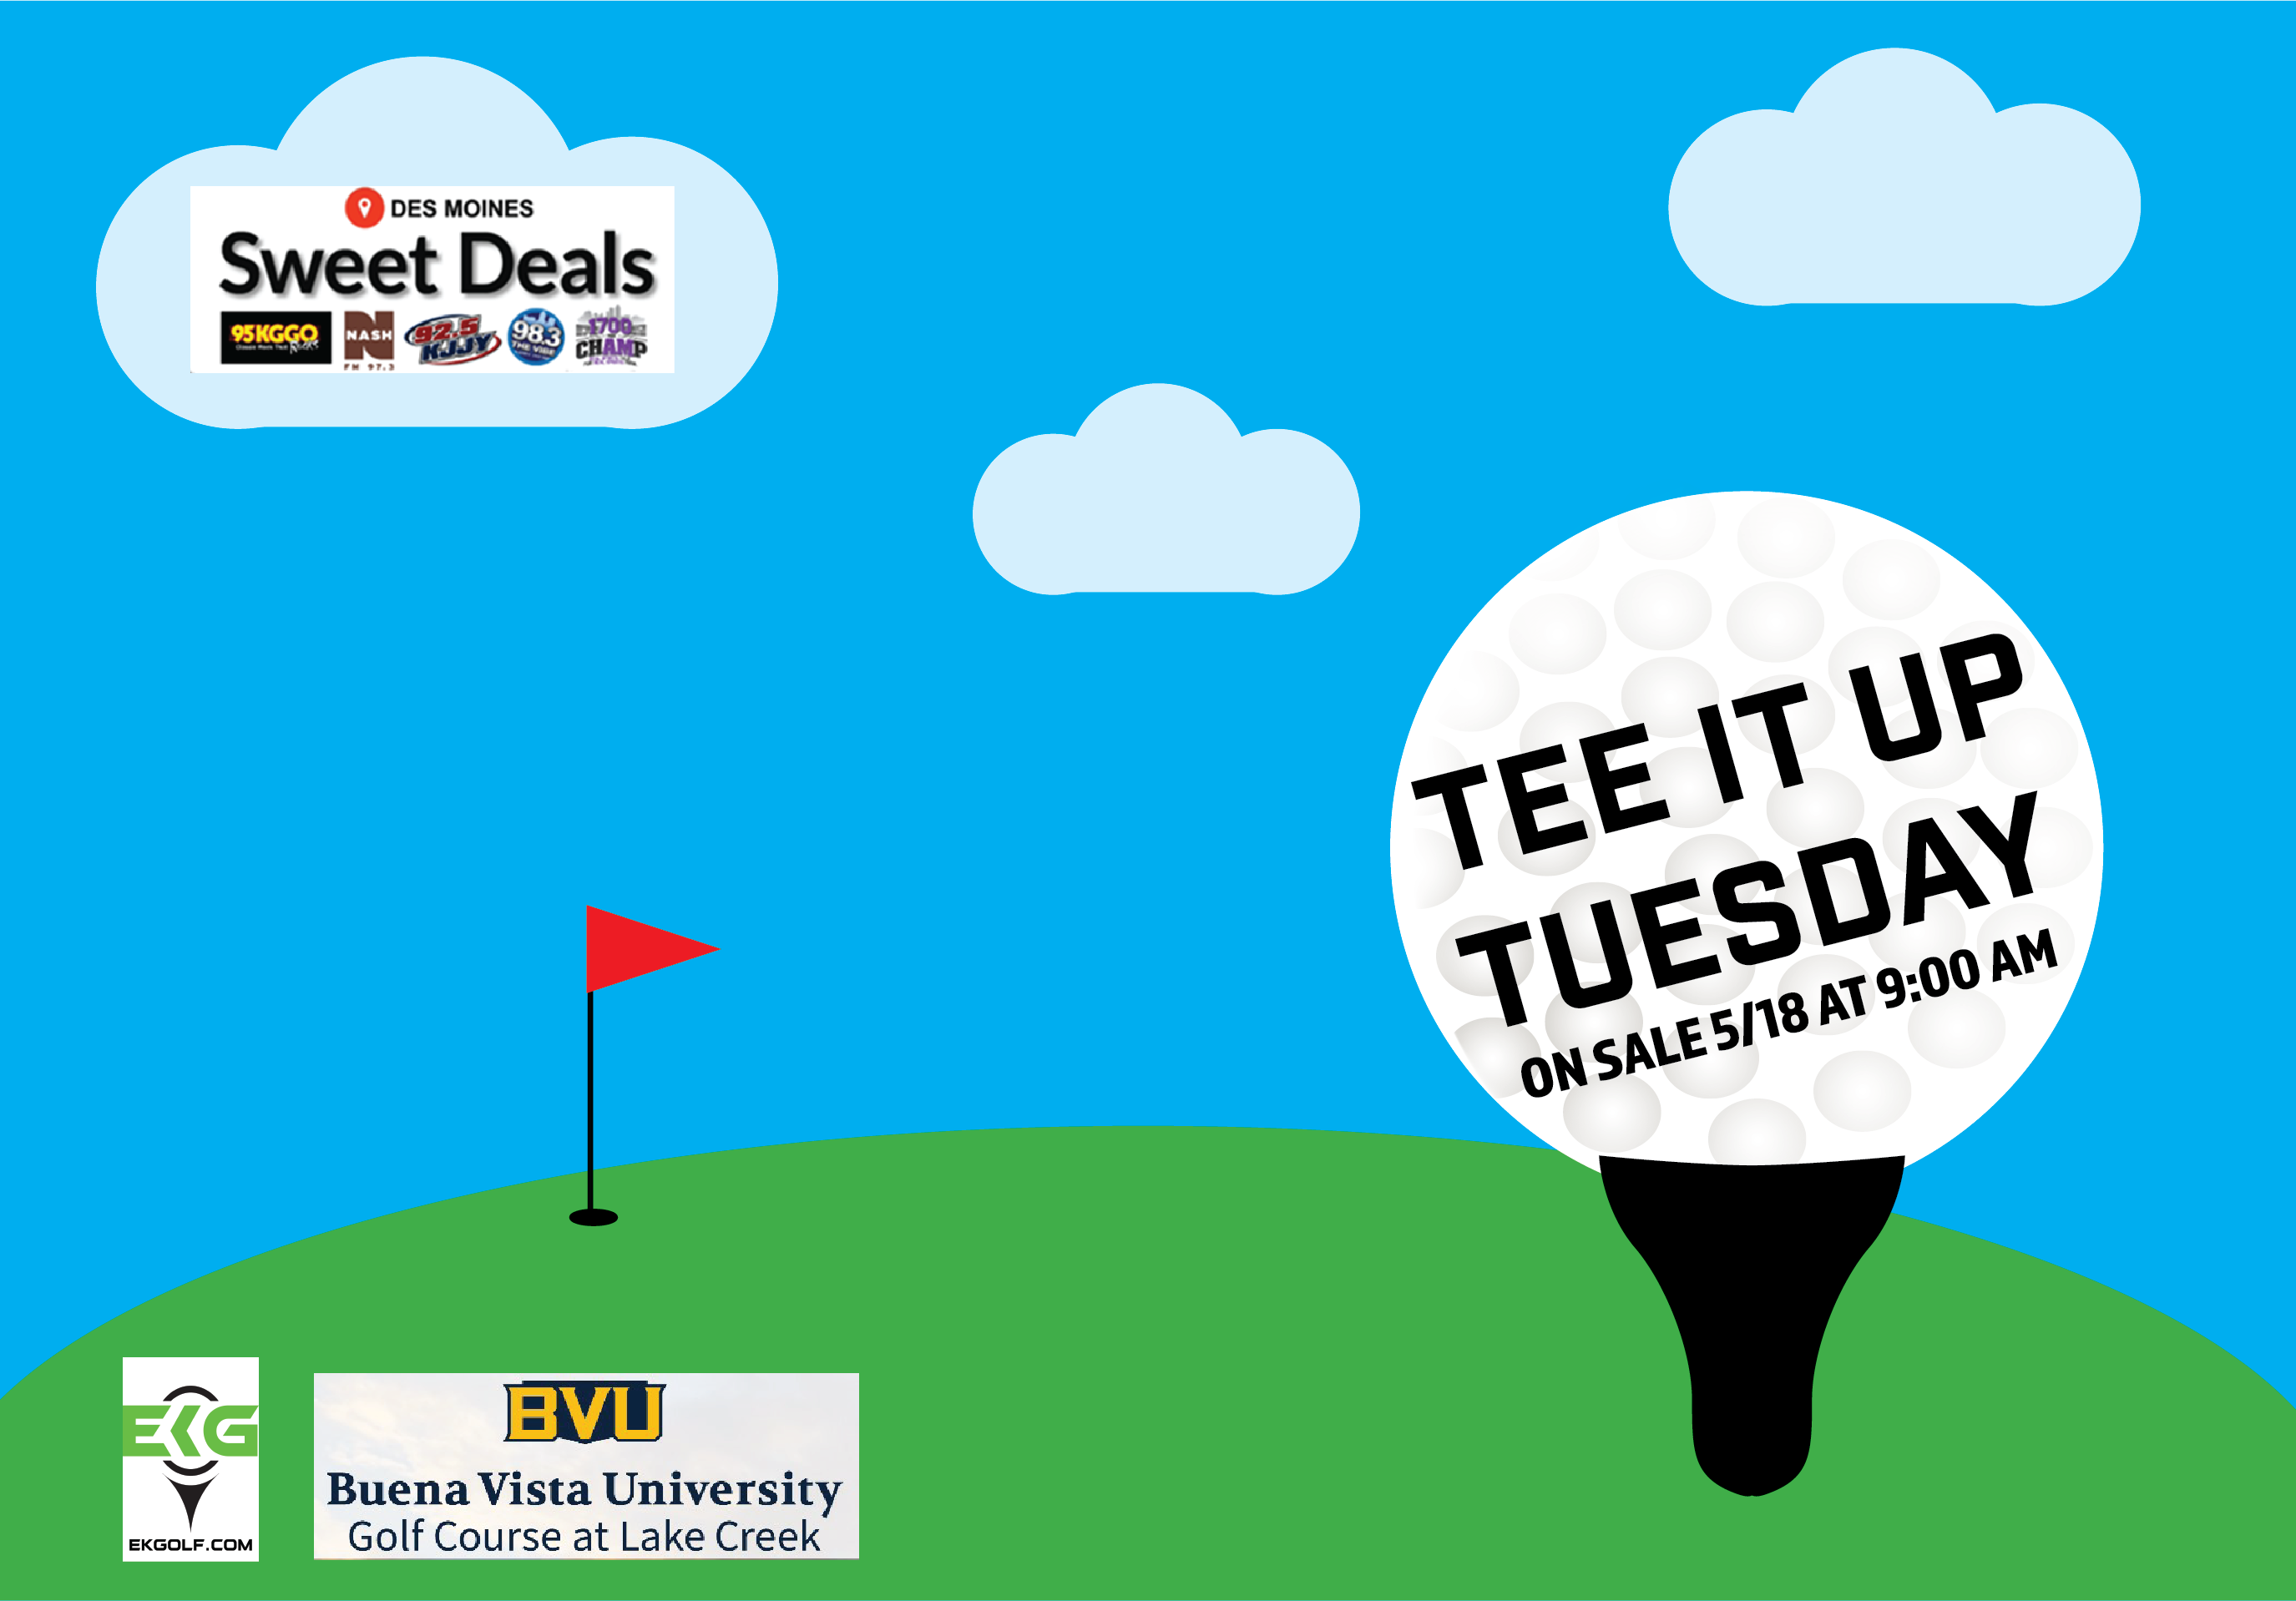 Tee It Up Tuesday